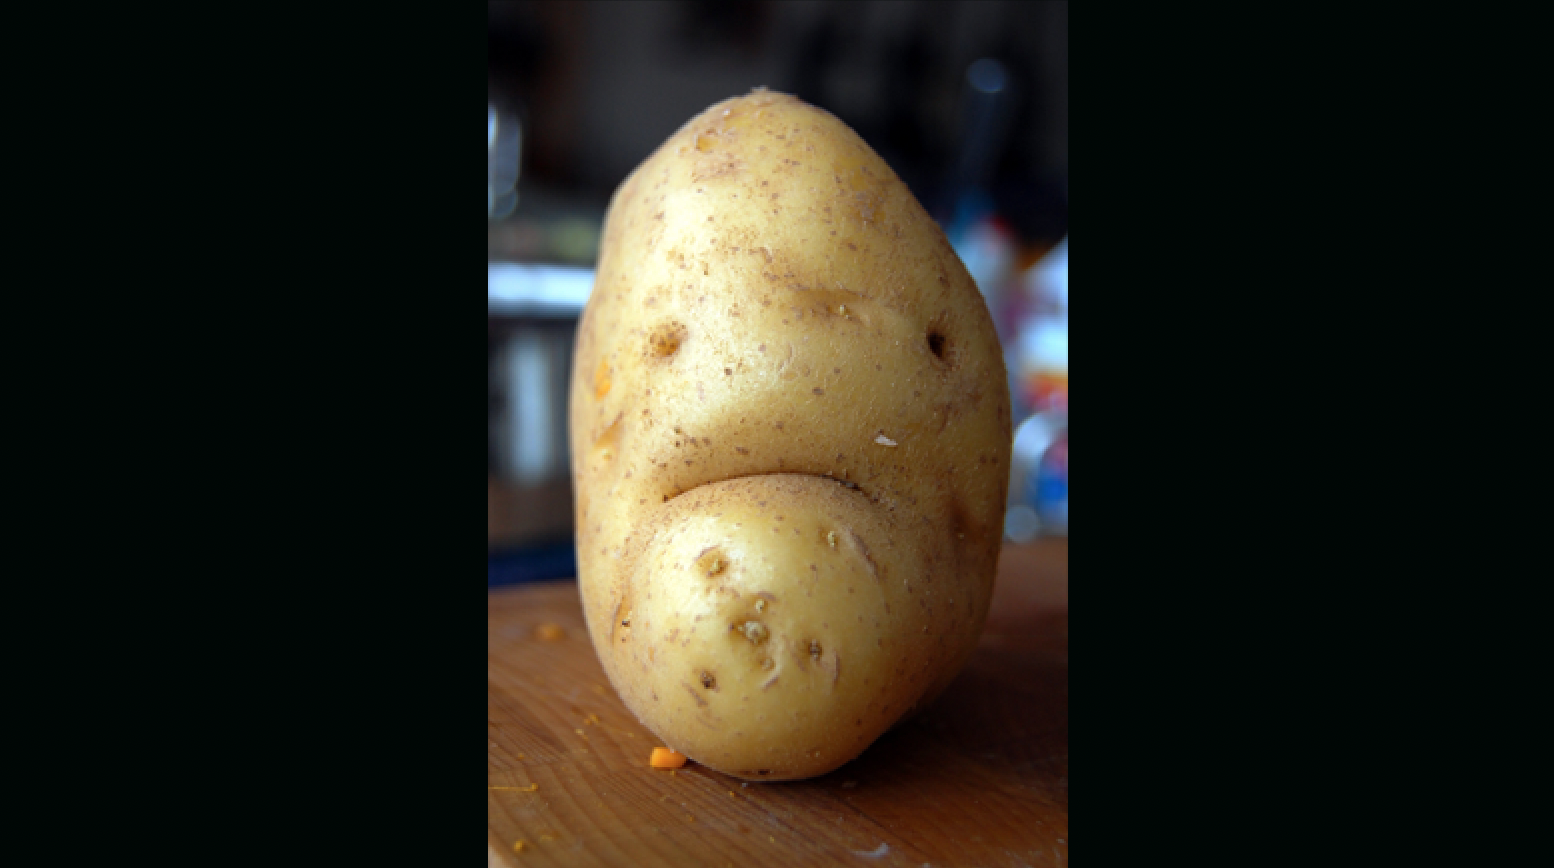 hasbro changes name to hasthey and unveils new gender neutral their potato head